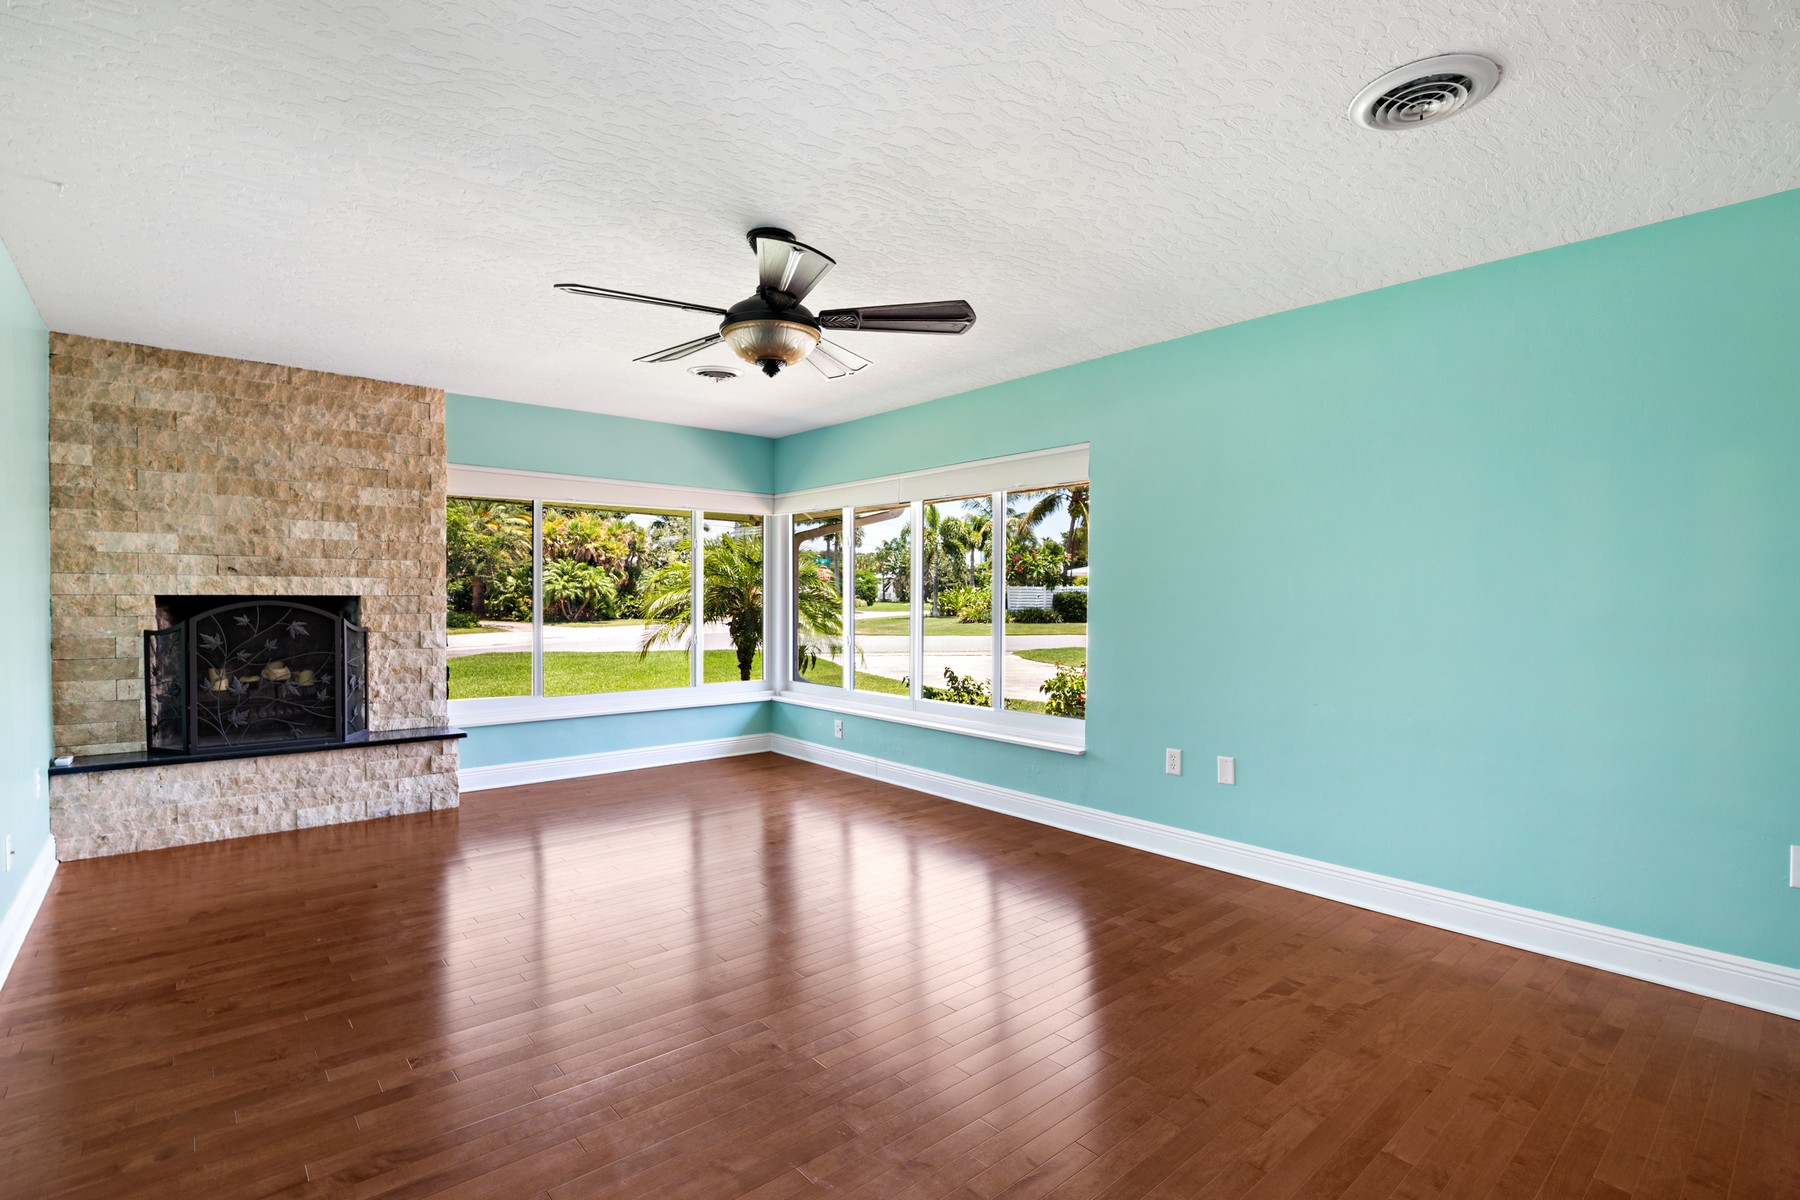 Additional photo for property listing at Indialantic By The Sea 1301 W. Riverside Drive Indialantic, Florida 32903 United States